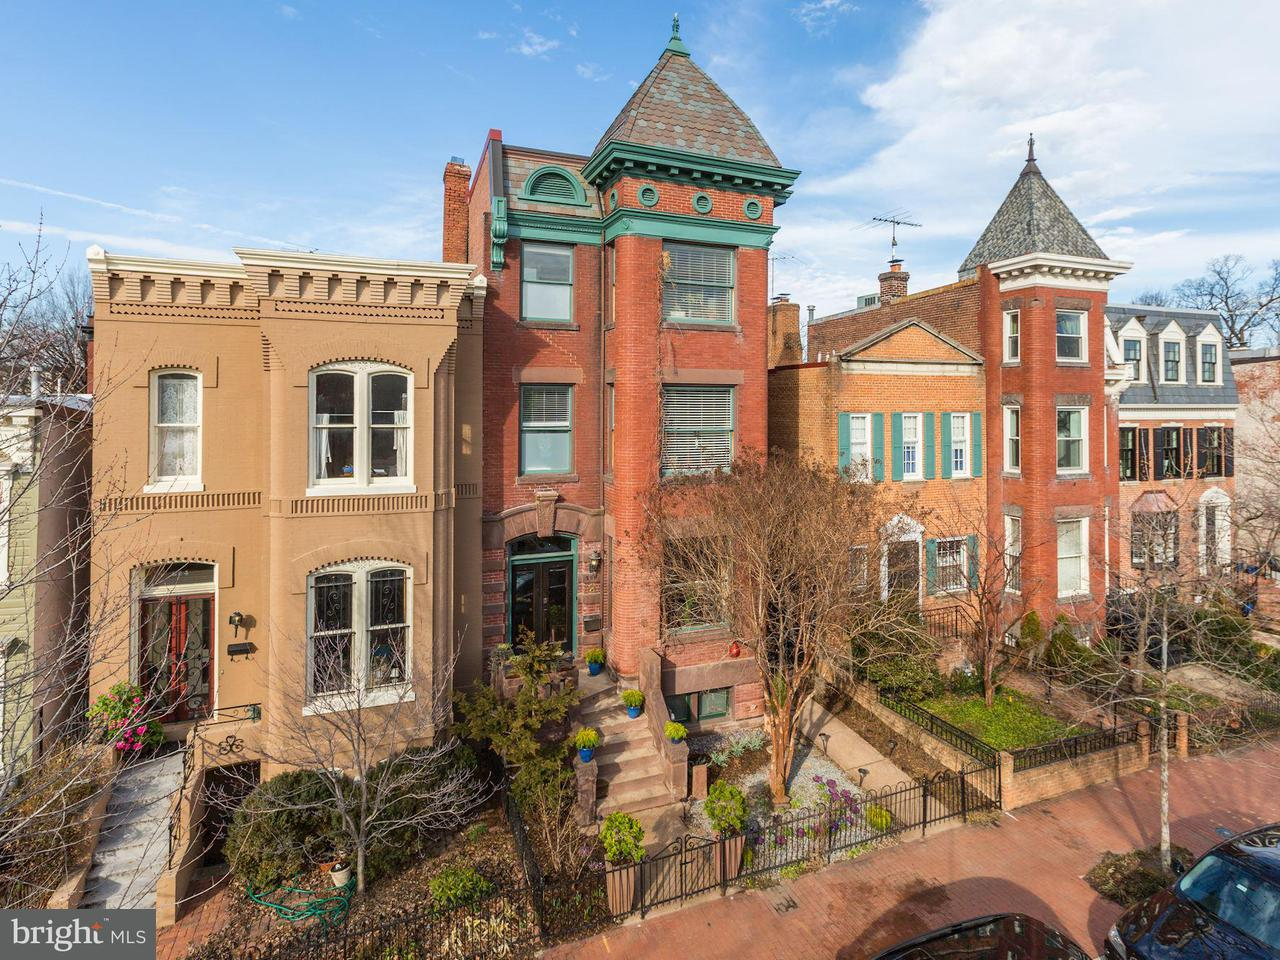 Townhouse for Sale at 506 A St Se 506 A St Se Washington, District Of Columbia 20003 United States